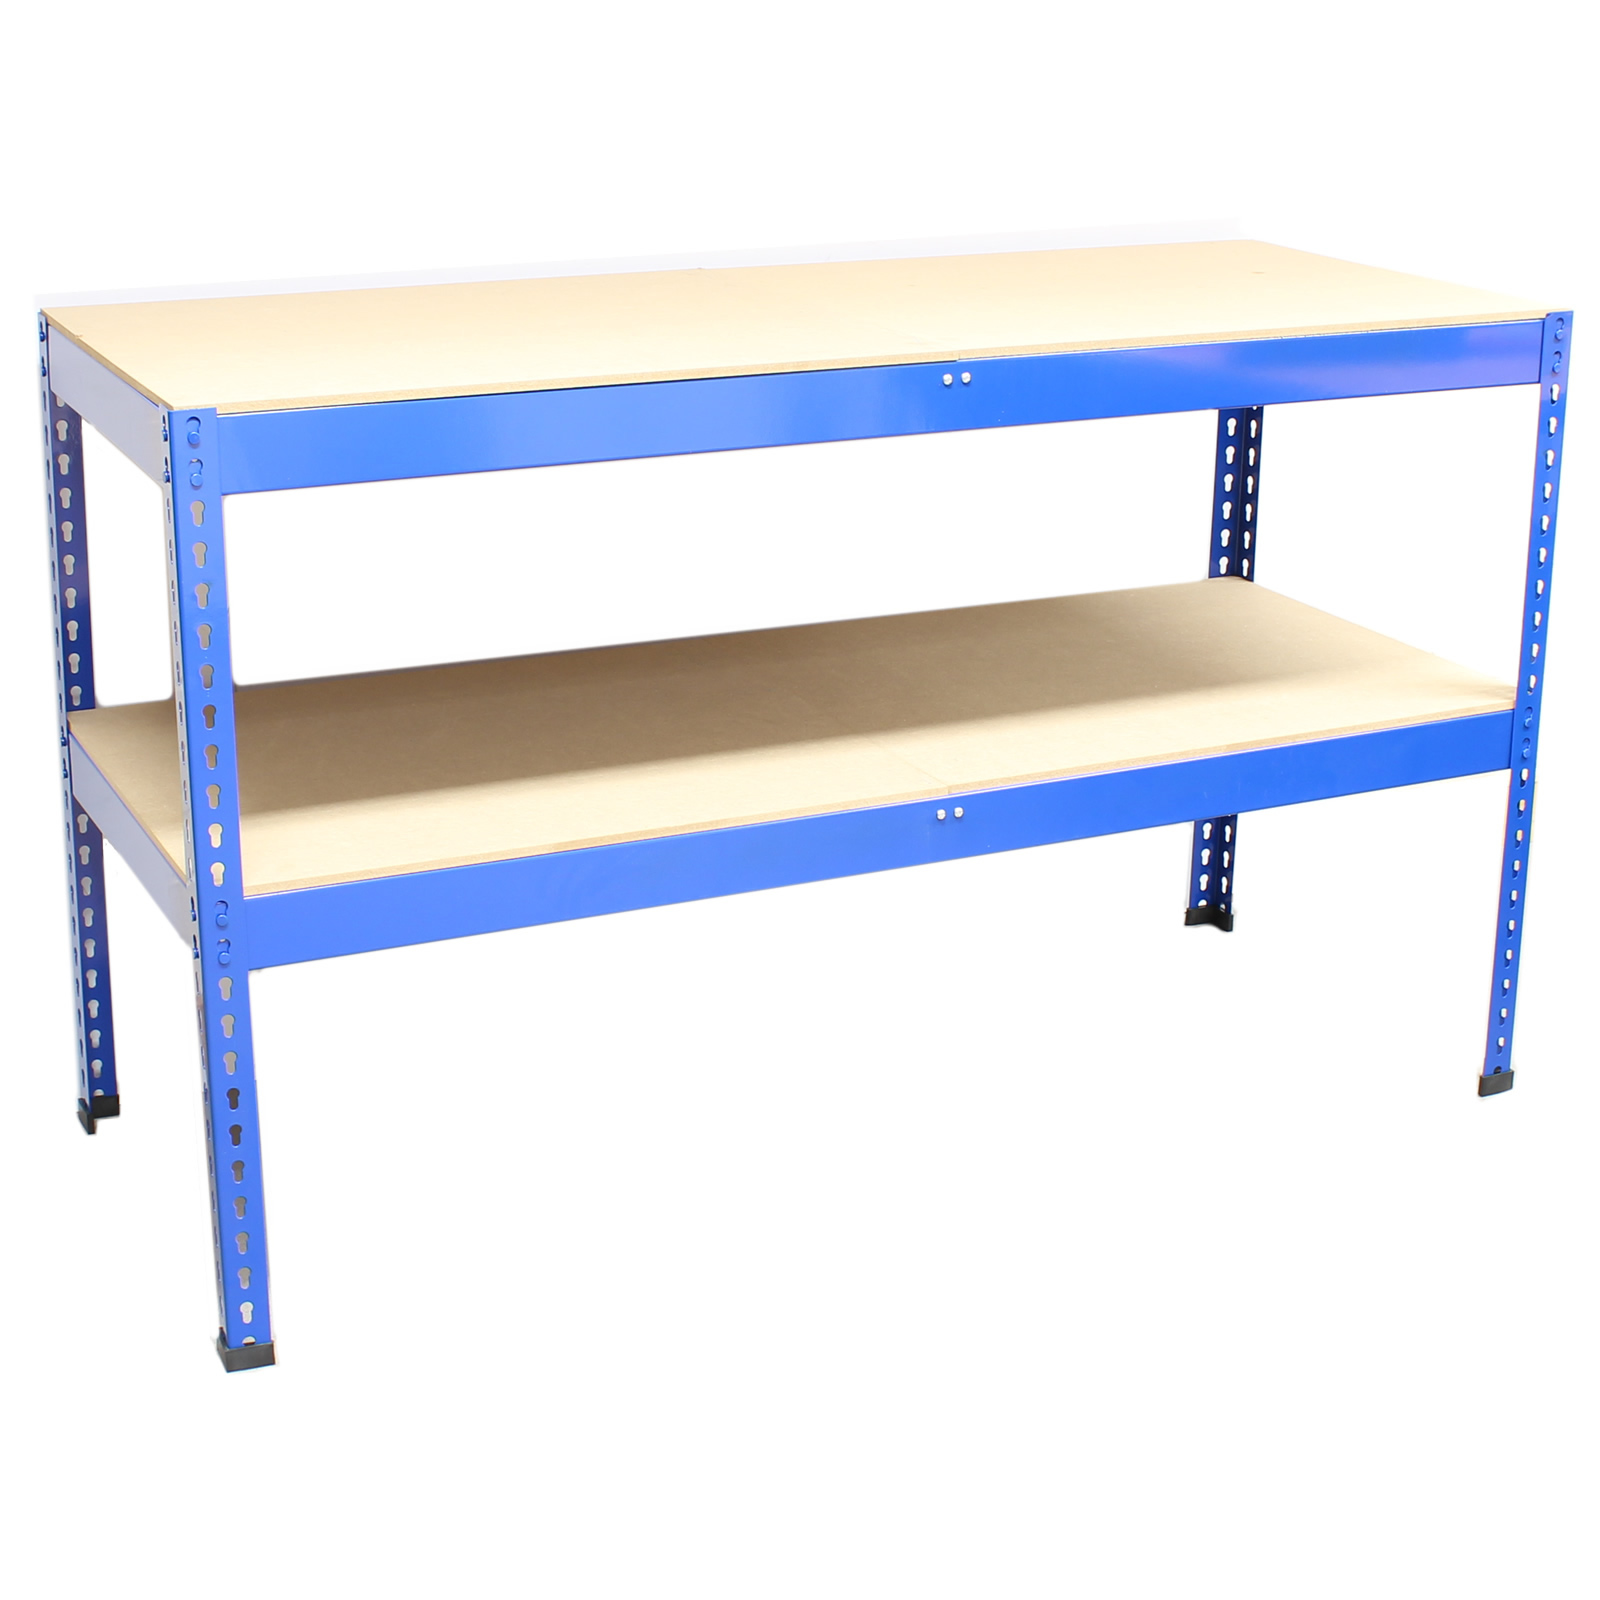 150x60x90 Heavy Duty Blue Steel Work Bench Garage Warehouse Workbench Racking Ebay